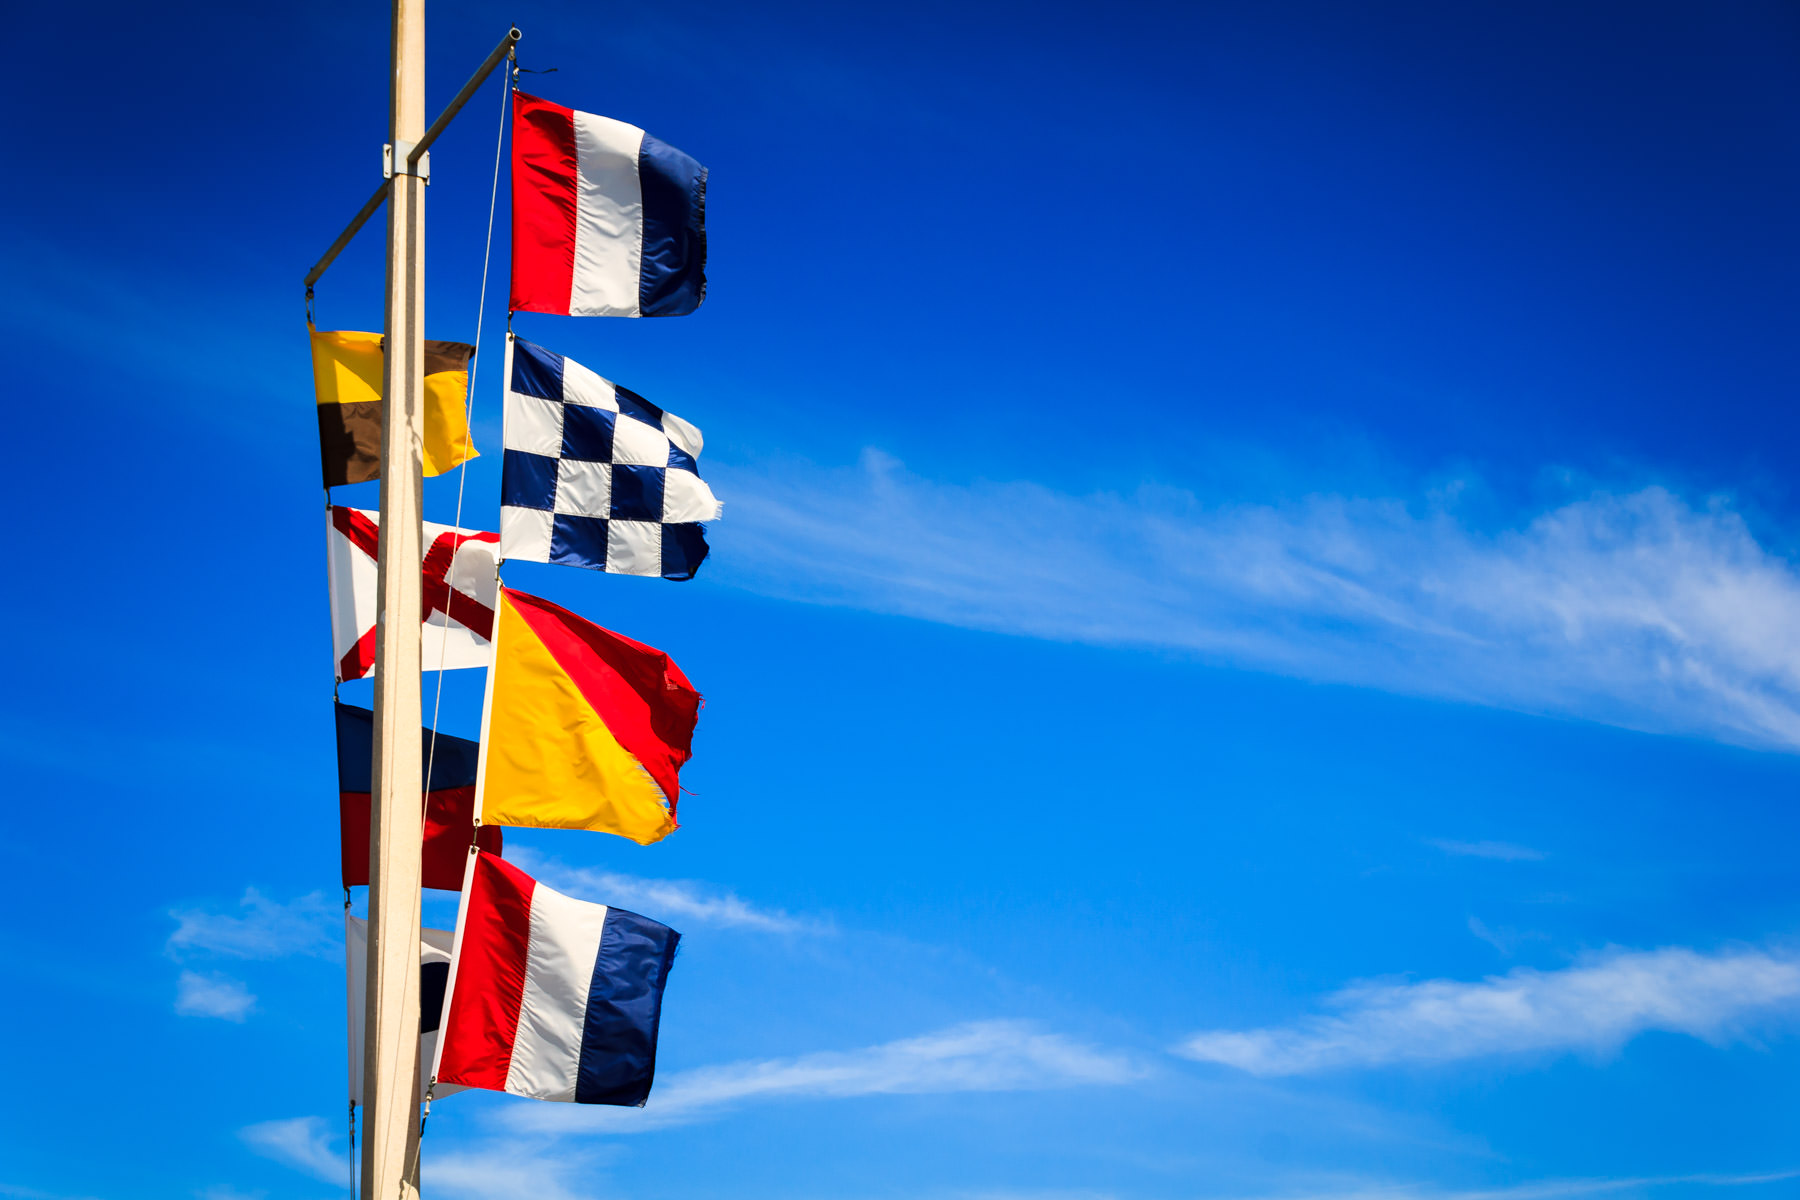 Maritime signal flags spotted in Galveston, Texas.